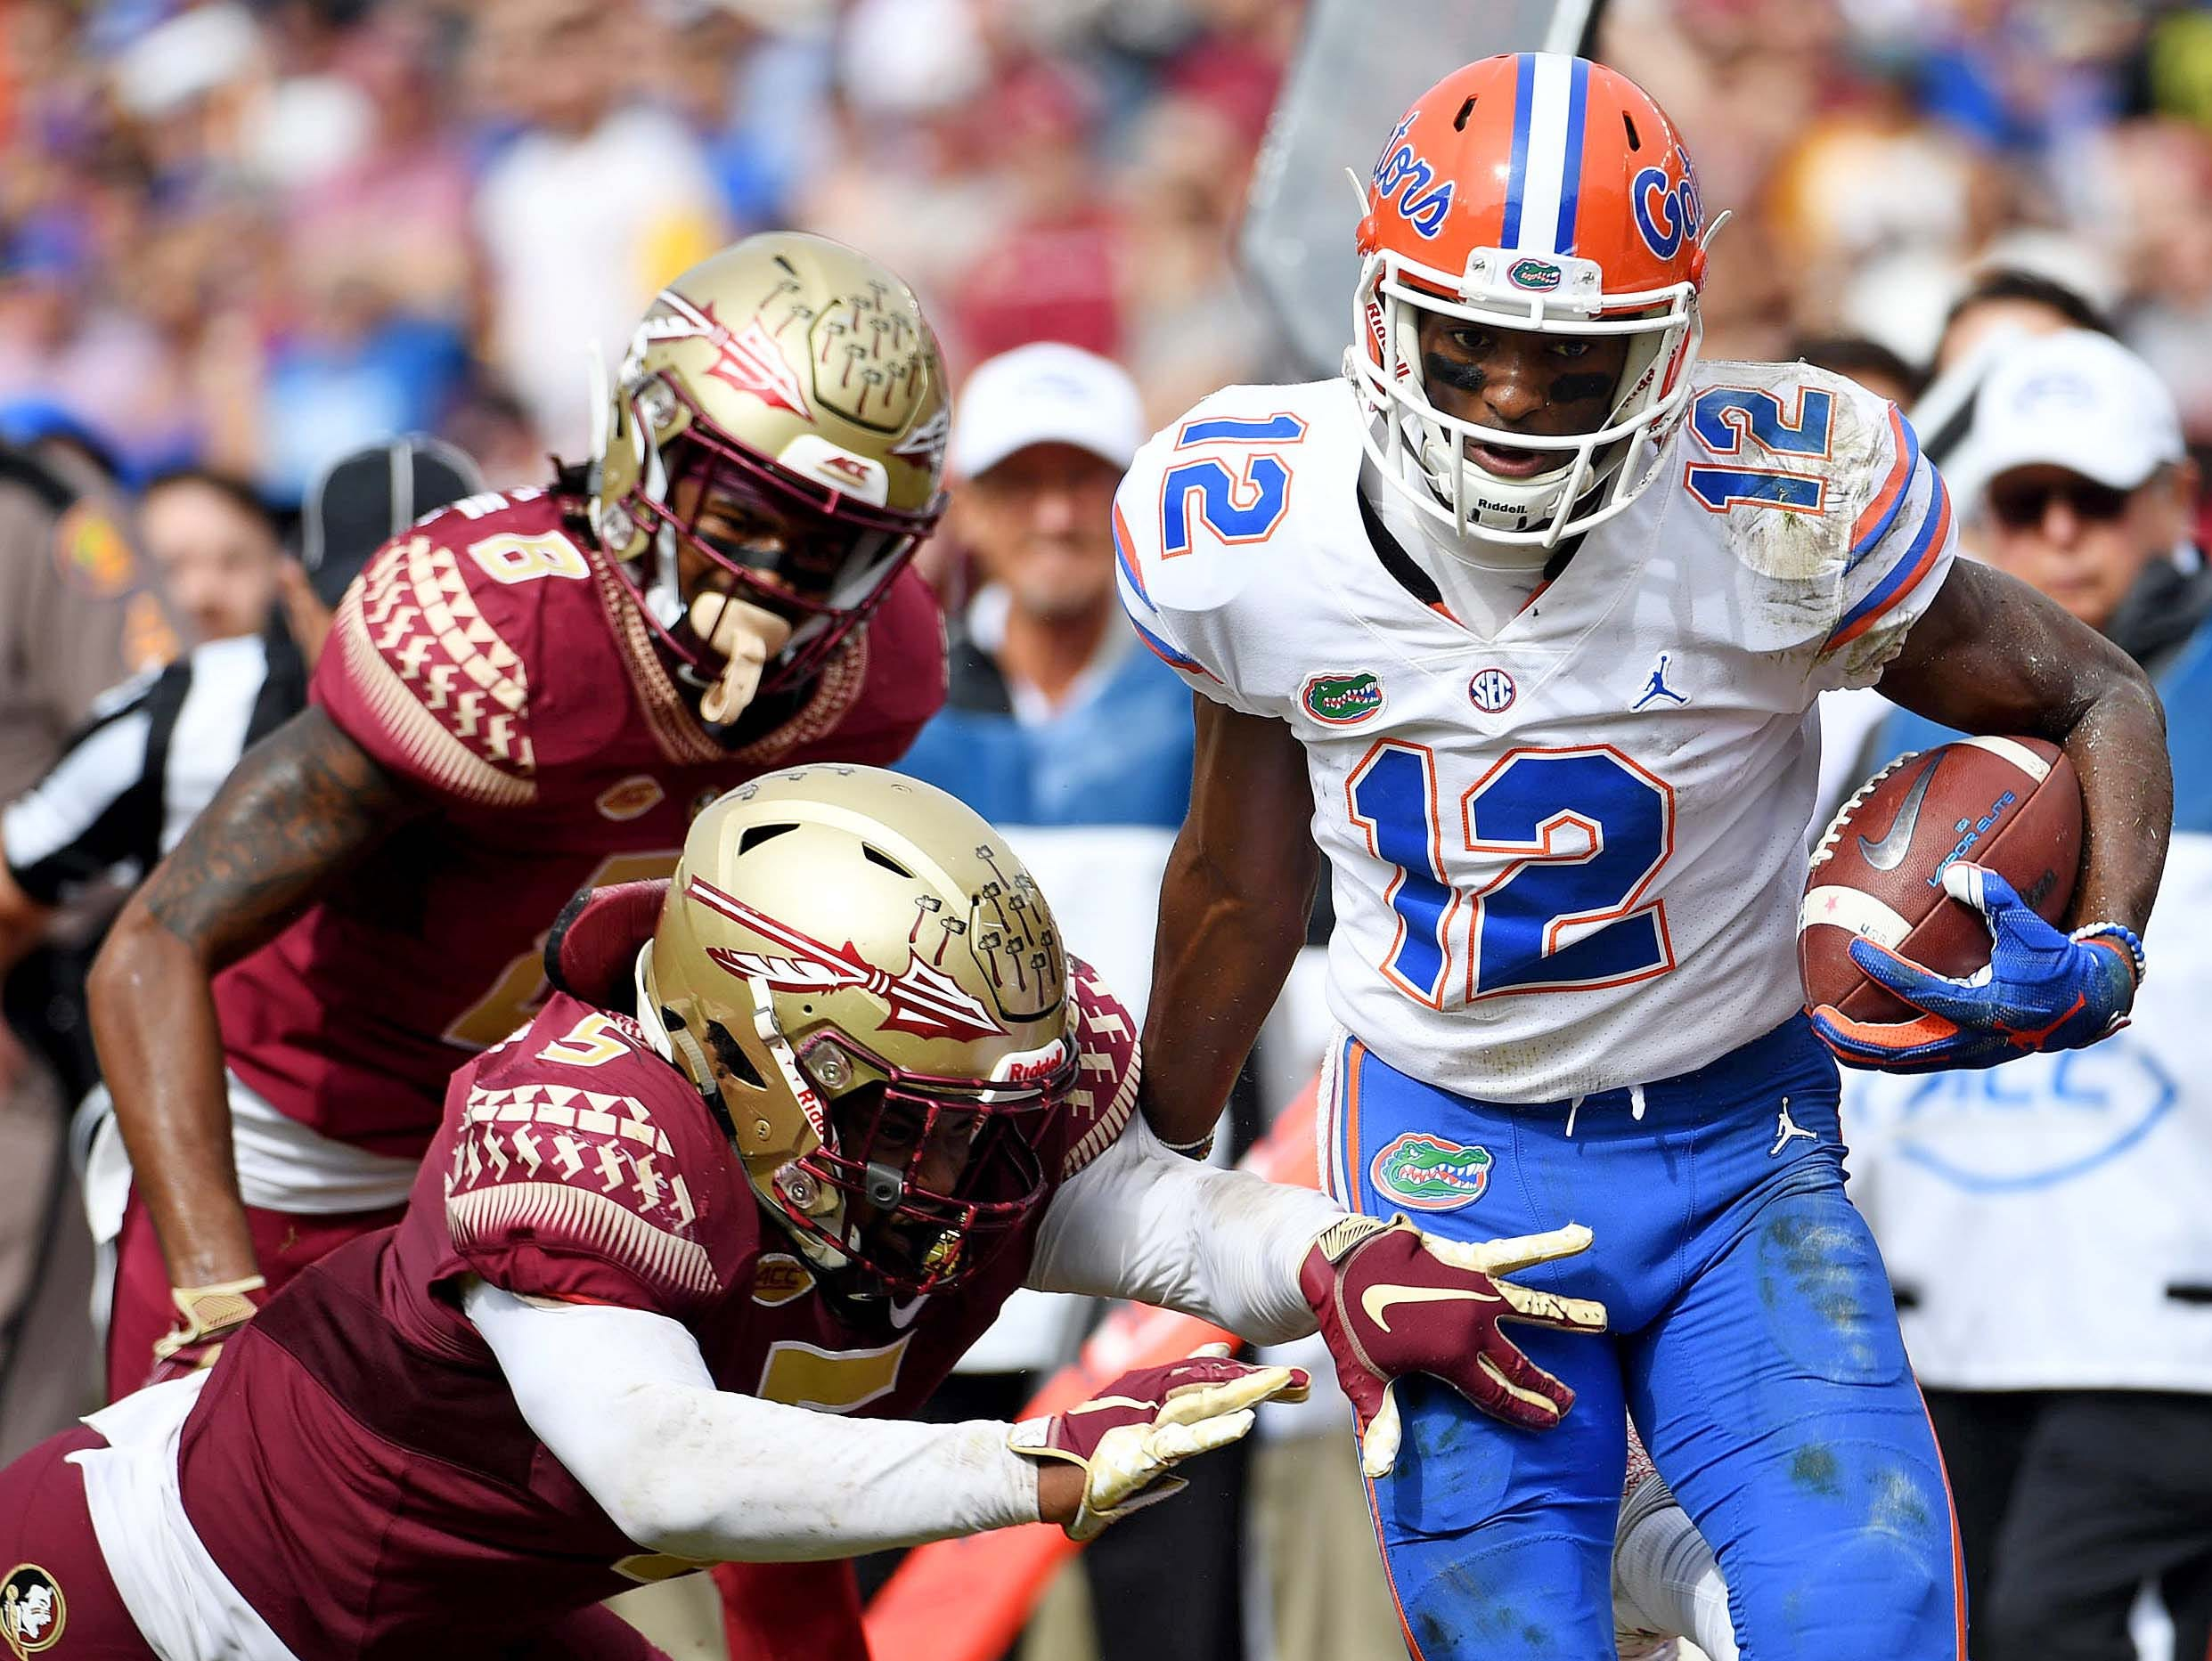 Nov 24, 2018; Tallahassee, FL, USA; Florida Gators wide receiver Van Jefferson (12) is pushed out of bounds by Florida State Seminoles linebacker Dontavious Jackson (5) during the first half at Doak Campbell Stadium. Mandatory Credit: Melina Myers-USA TODAY Sports